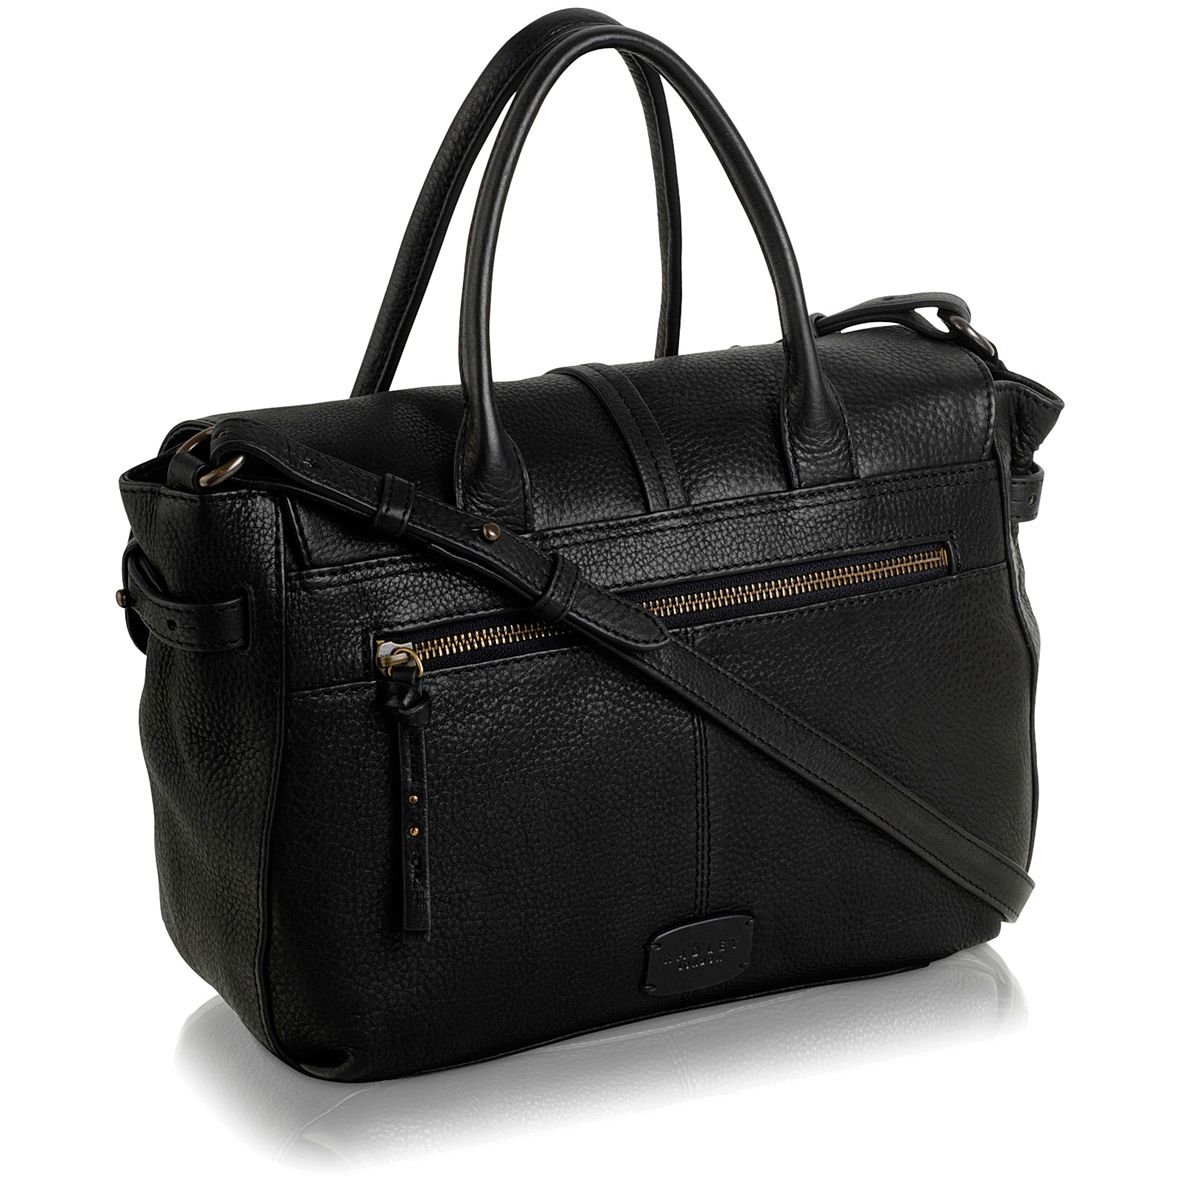 Grosvenor med leather blk flapover mway handbag